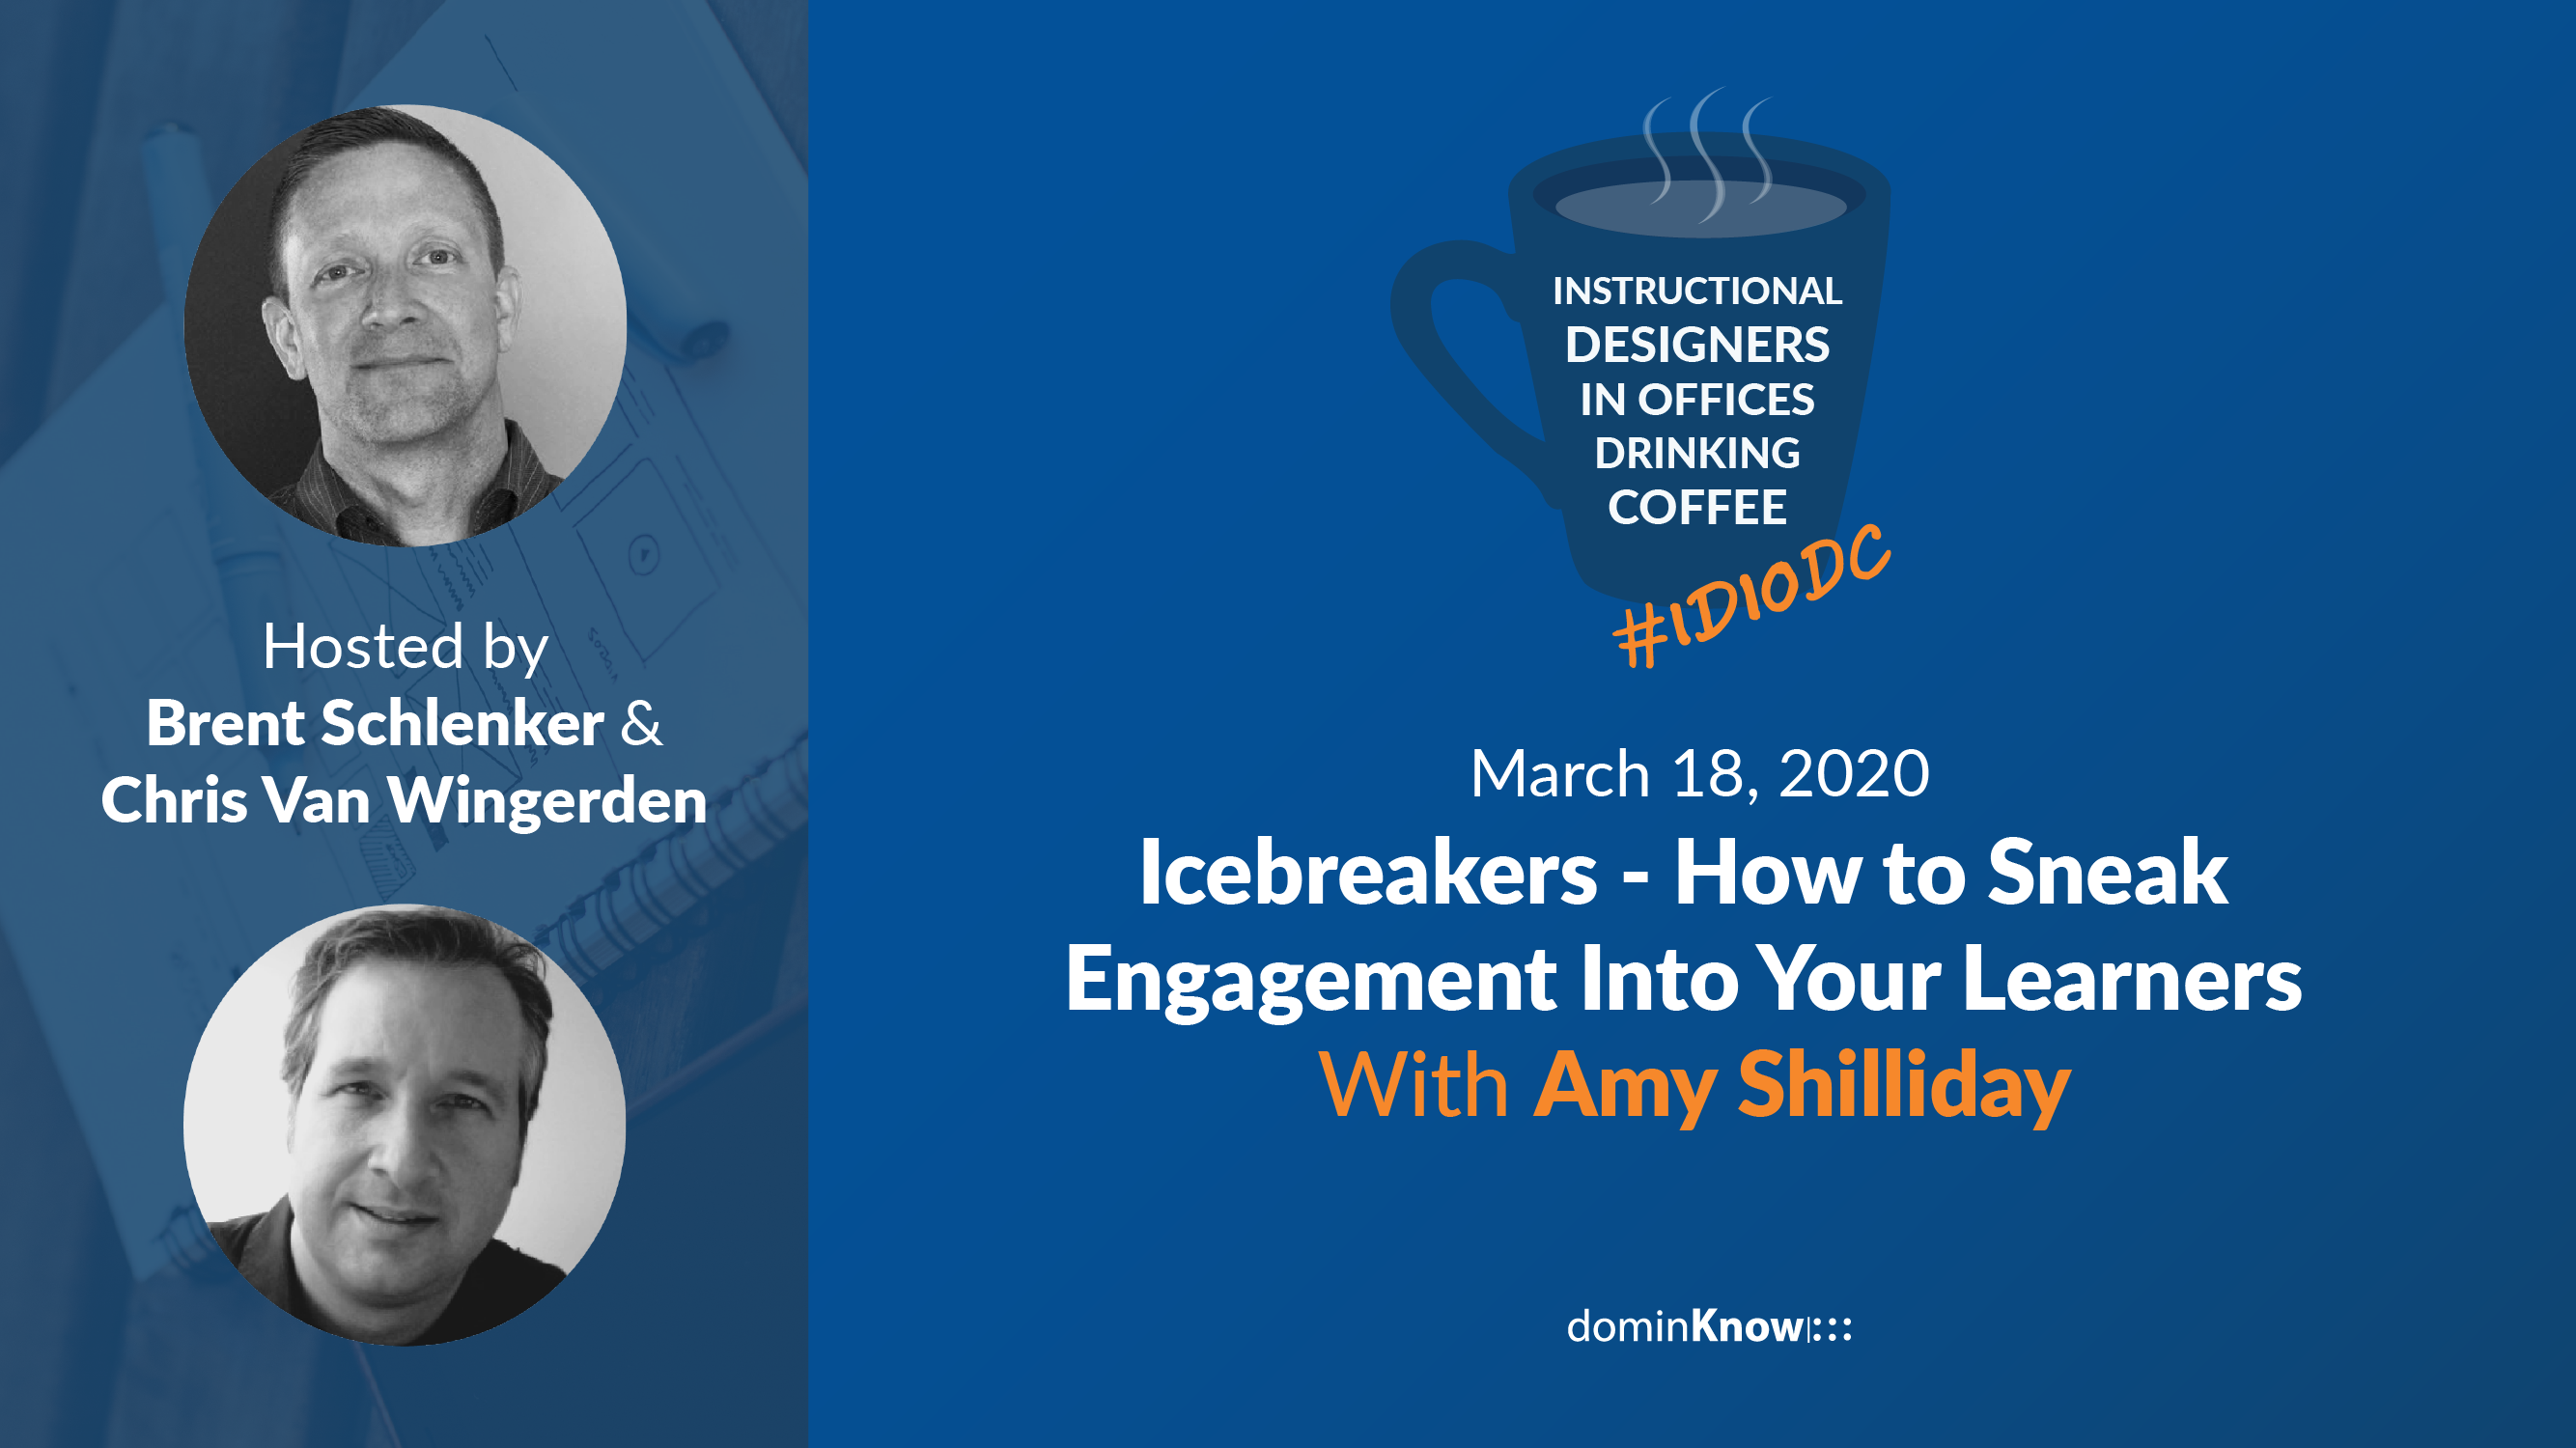 Amy Shilliday joins Brent and Chris for a conversation all about improving learner engagement through icebreaker acvities!